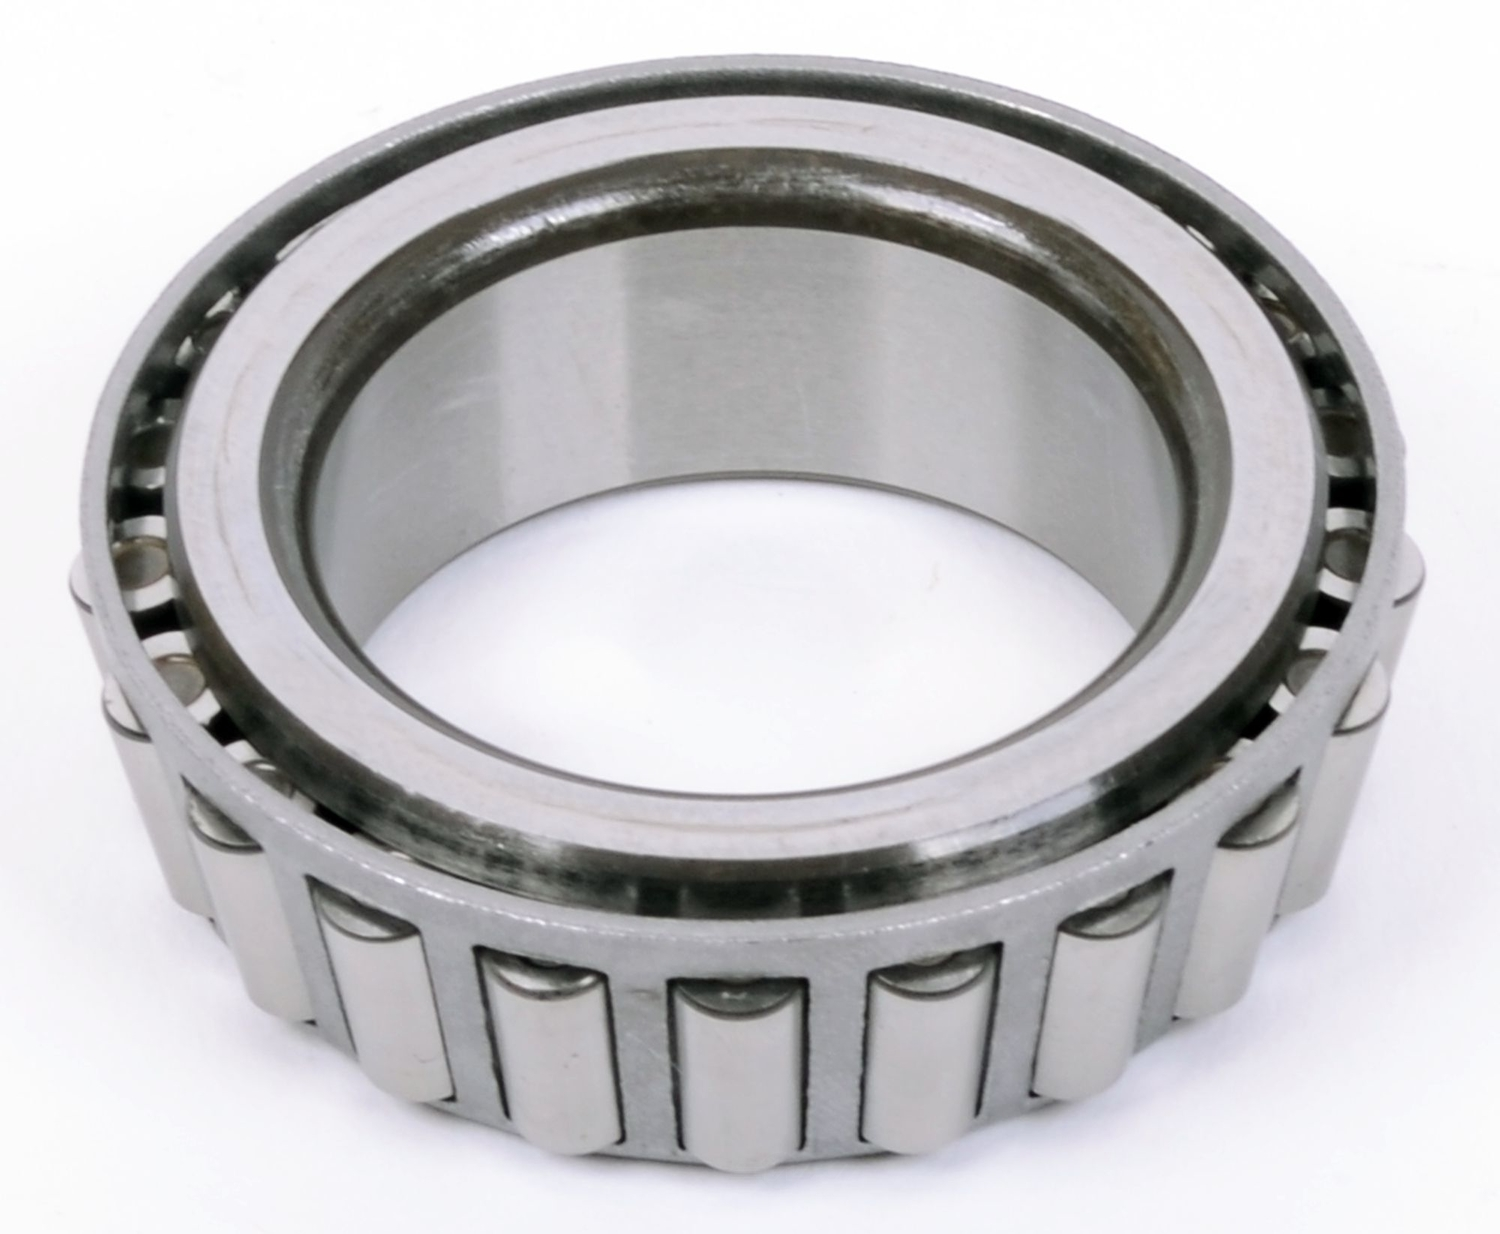 SKF (CHICAGO RAWHIDE) - Axle Differential Bearing - SKF LM29749 VP